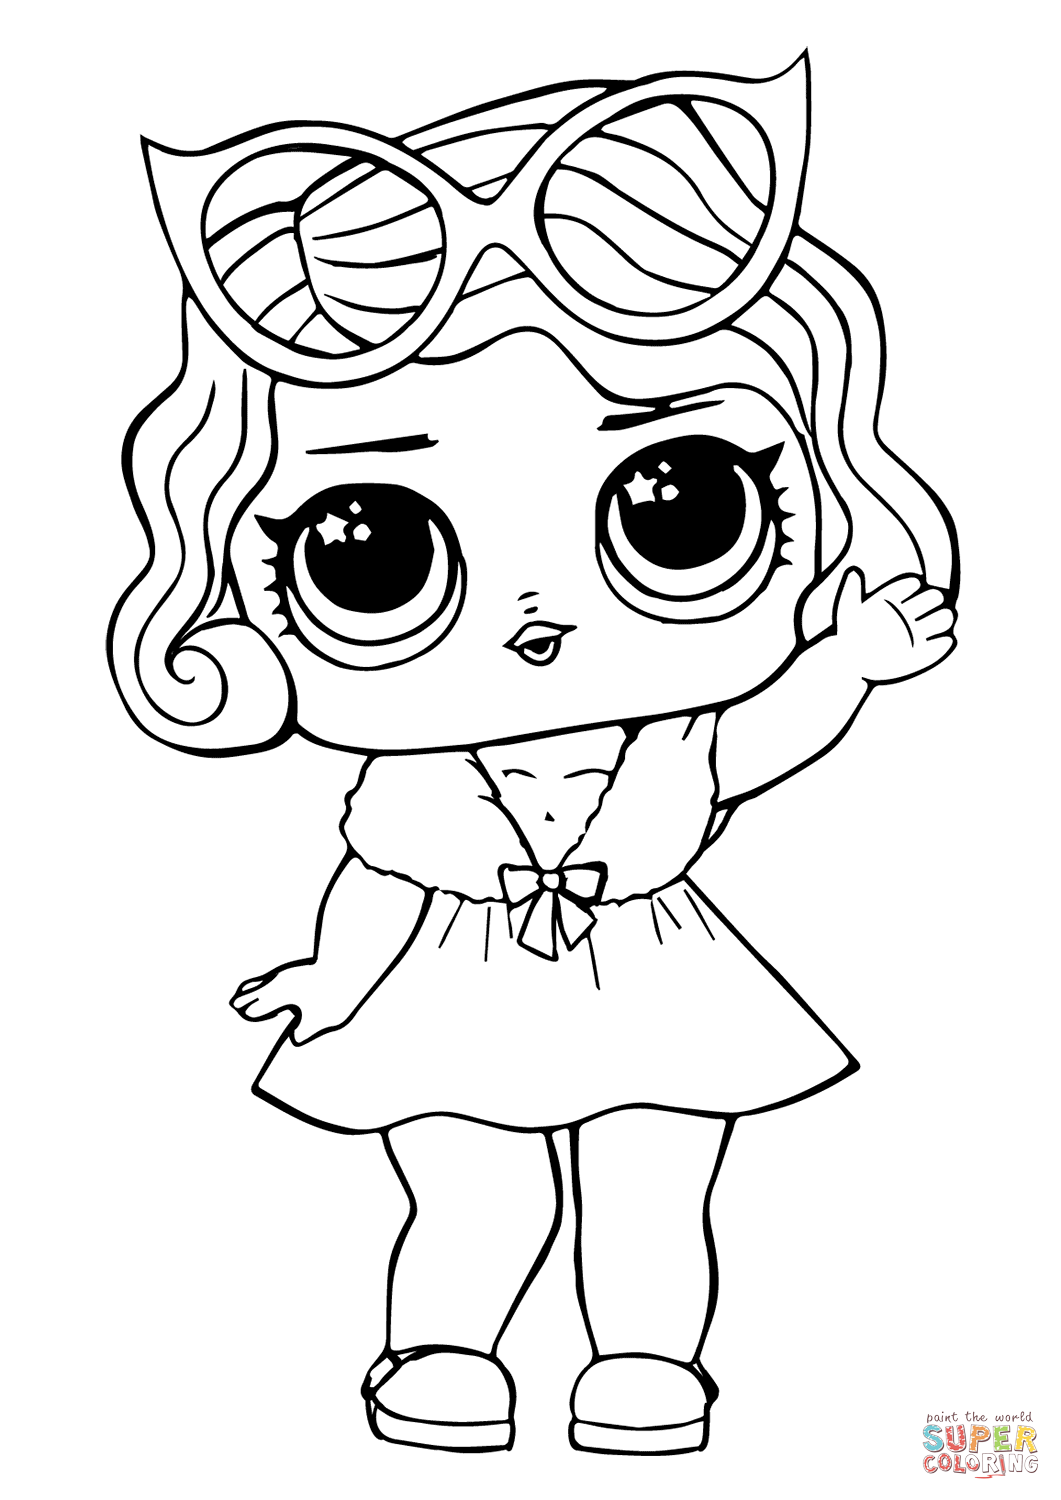 free printable lol coloring pages best 21 lol dolls coloring pages printable best coloring coloring printable free lol pages